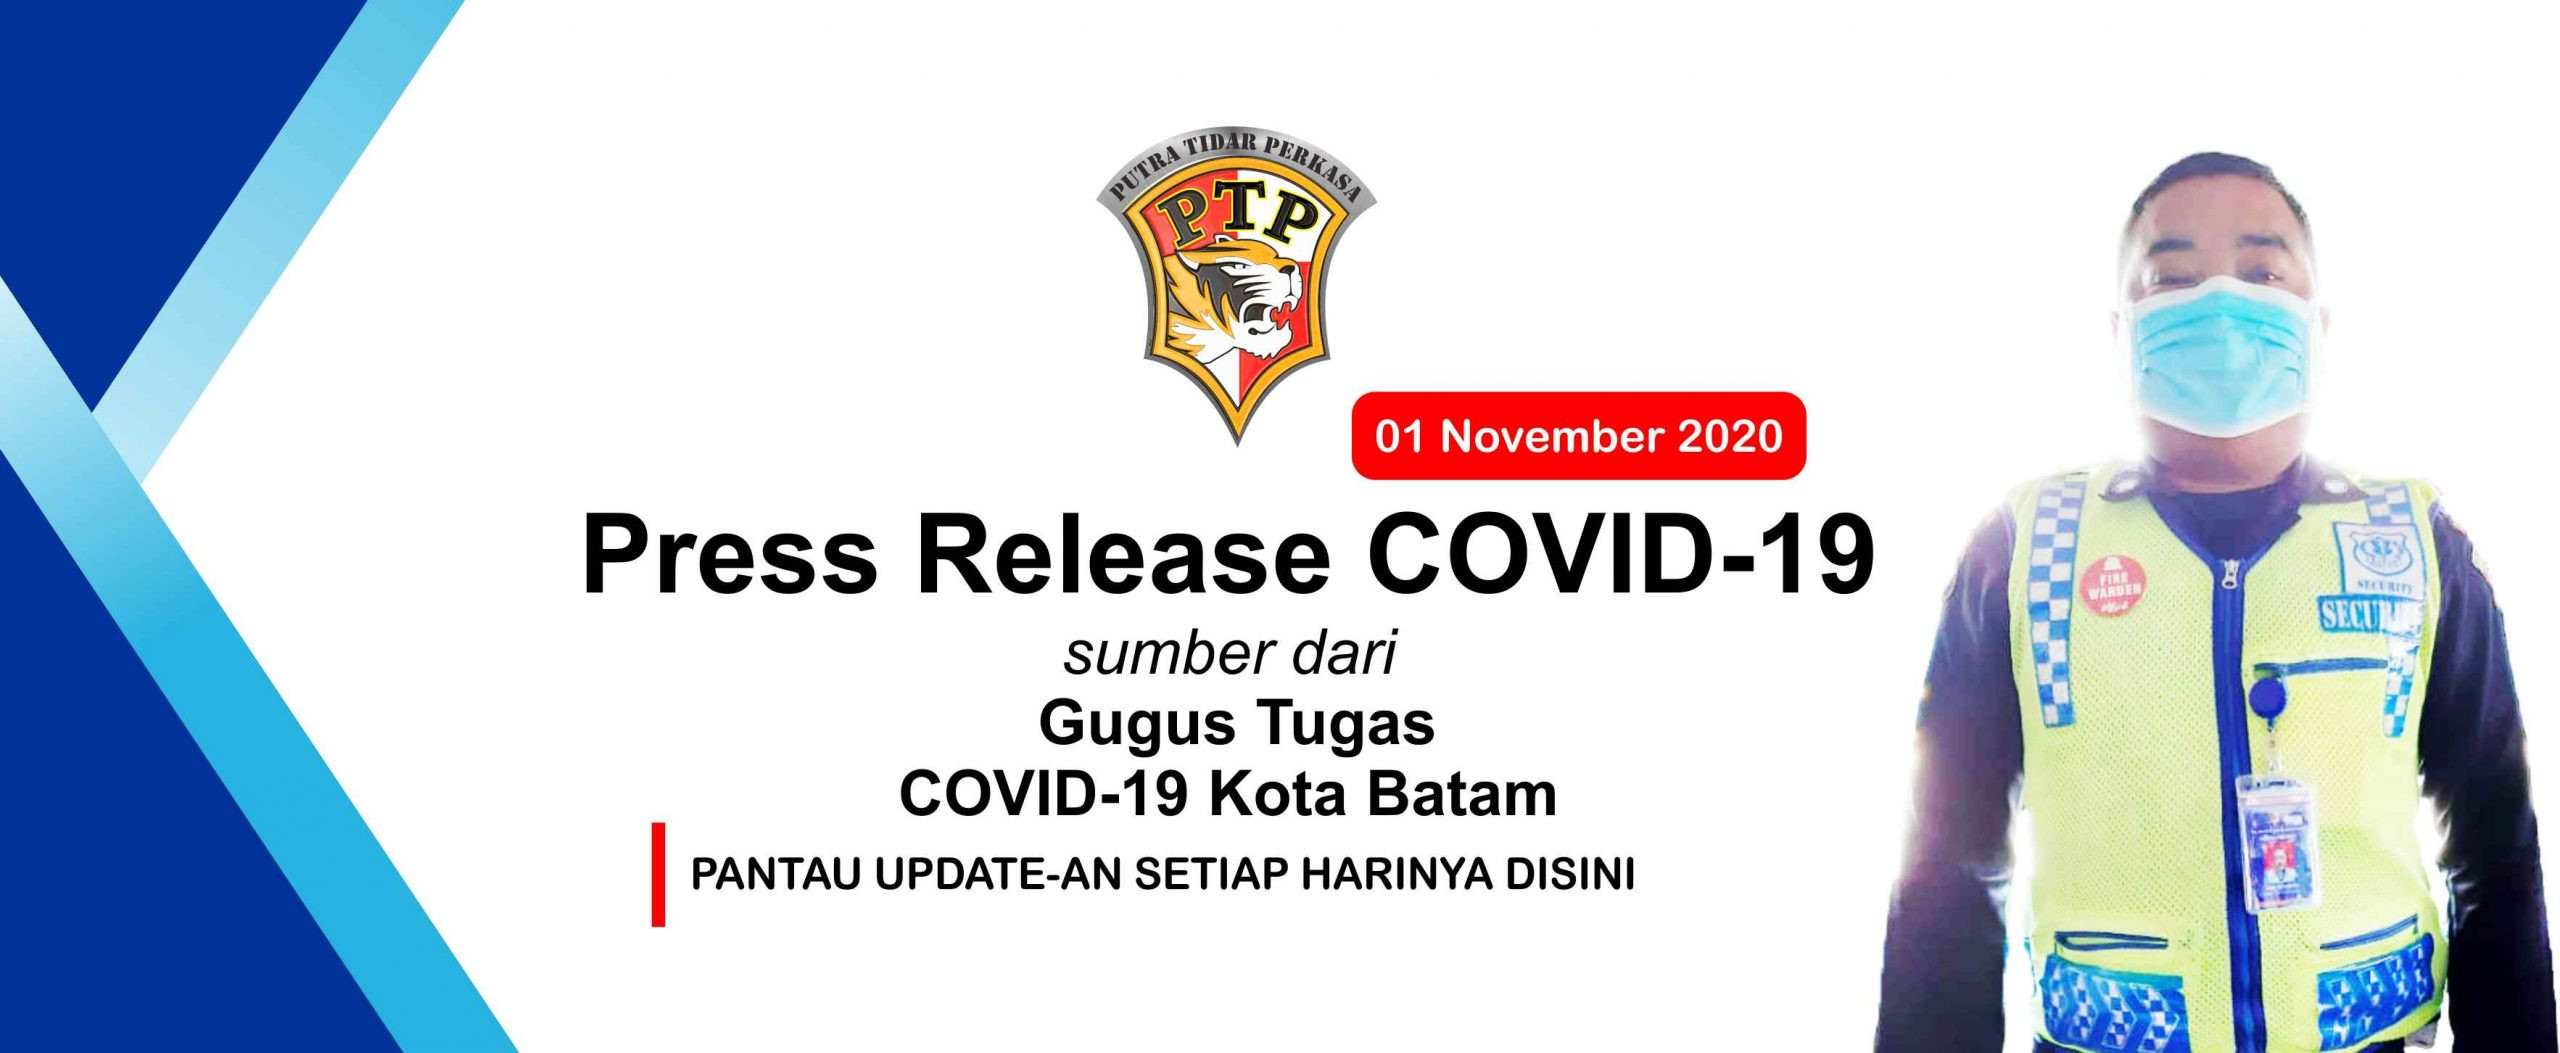 Press Release Gugus Tugas COVID-19 Kota Batam 01 November 2020